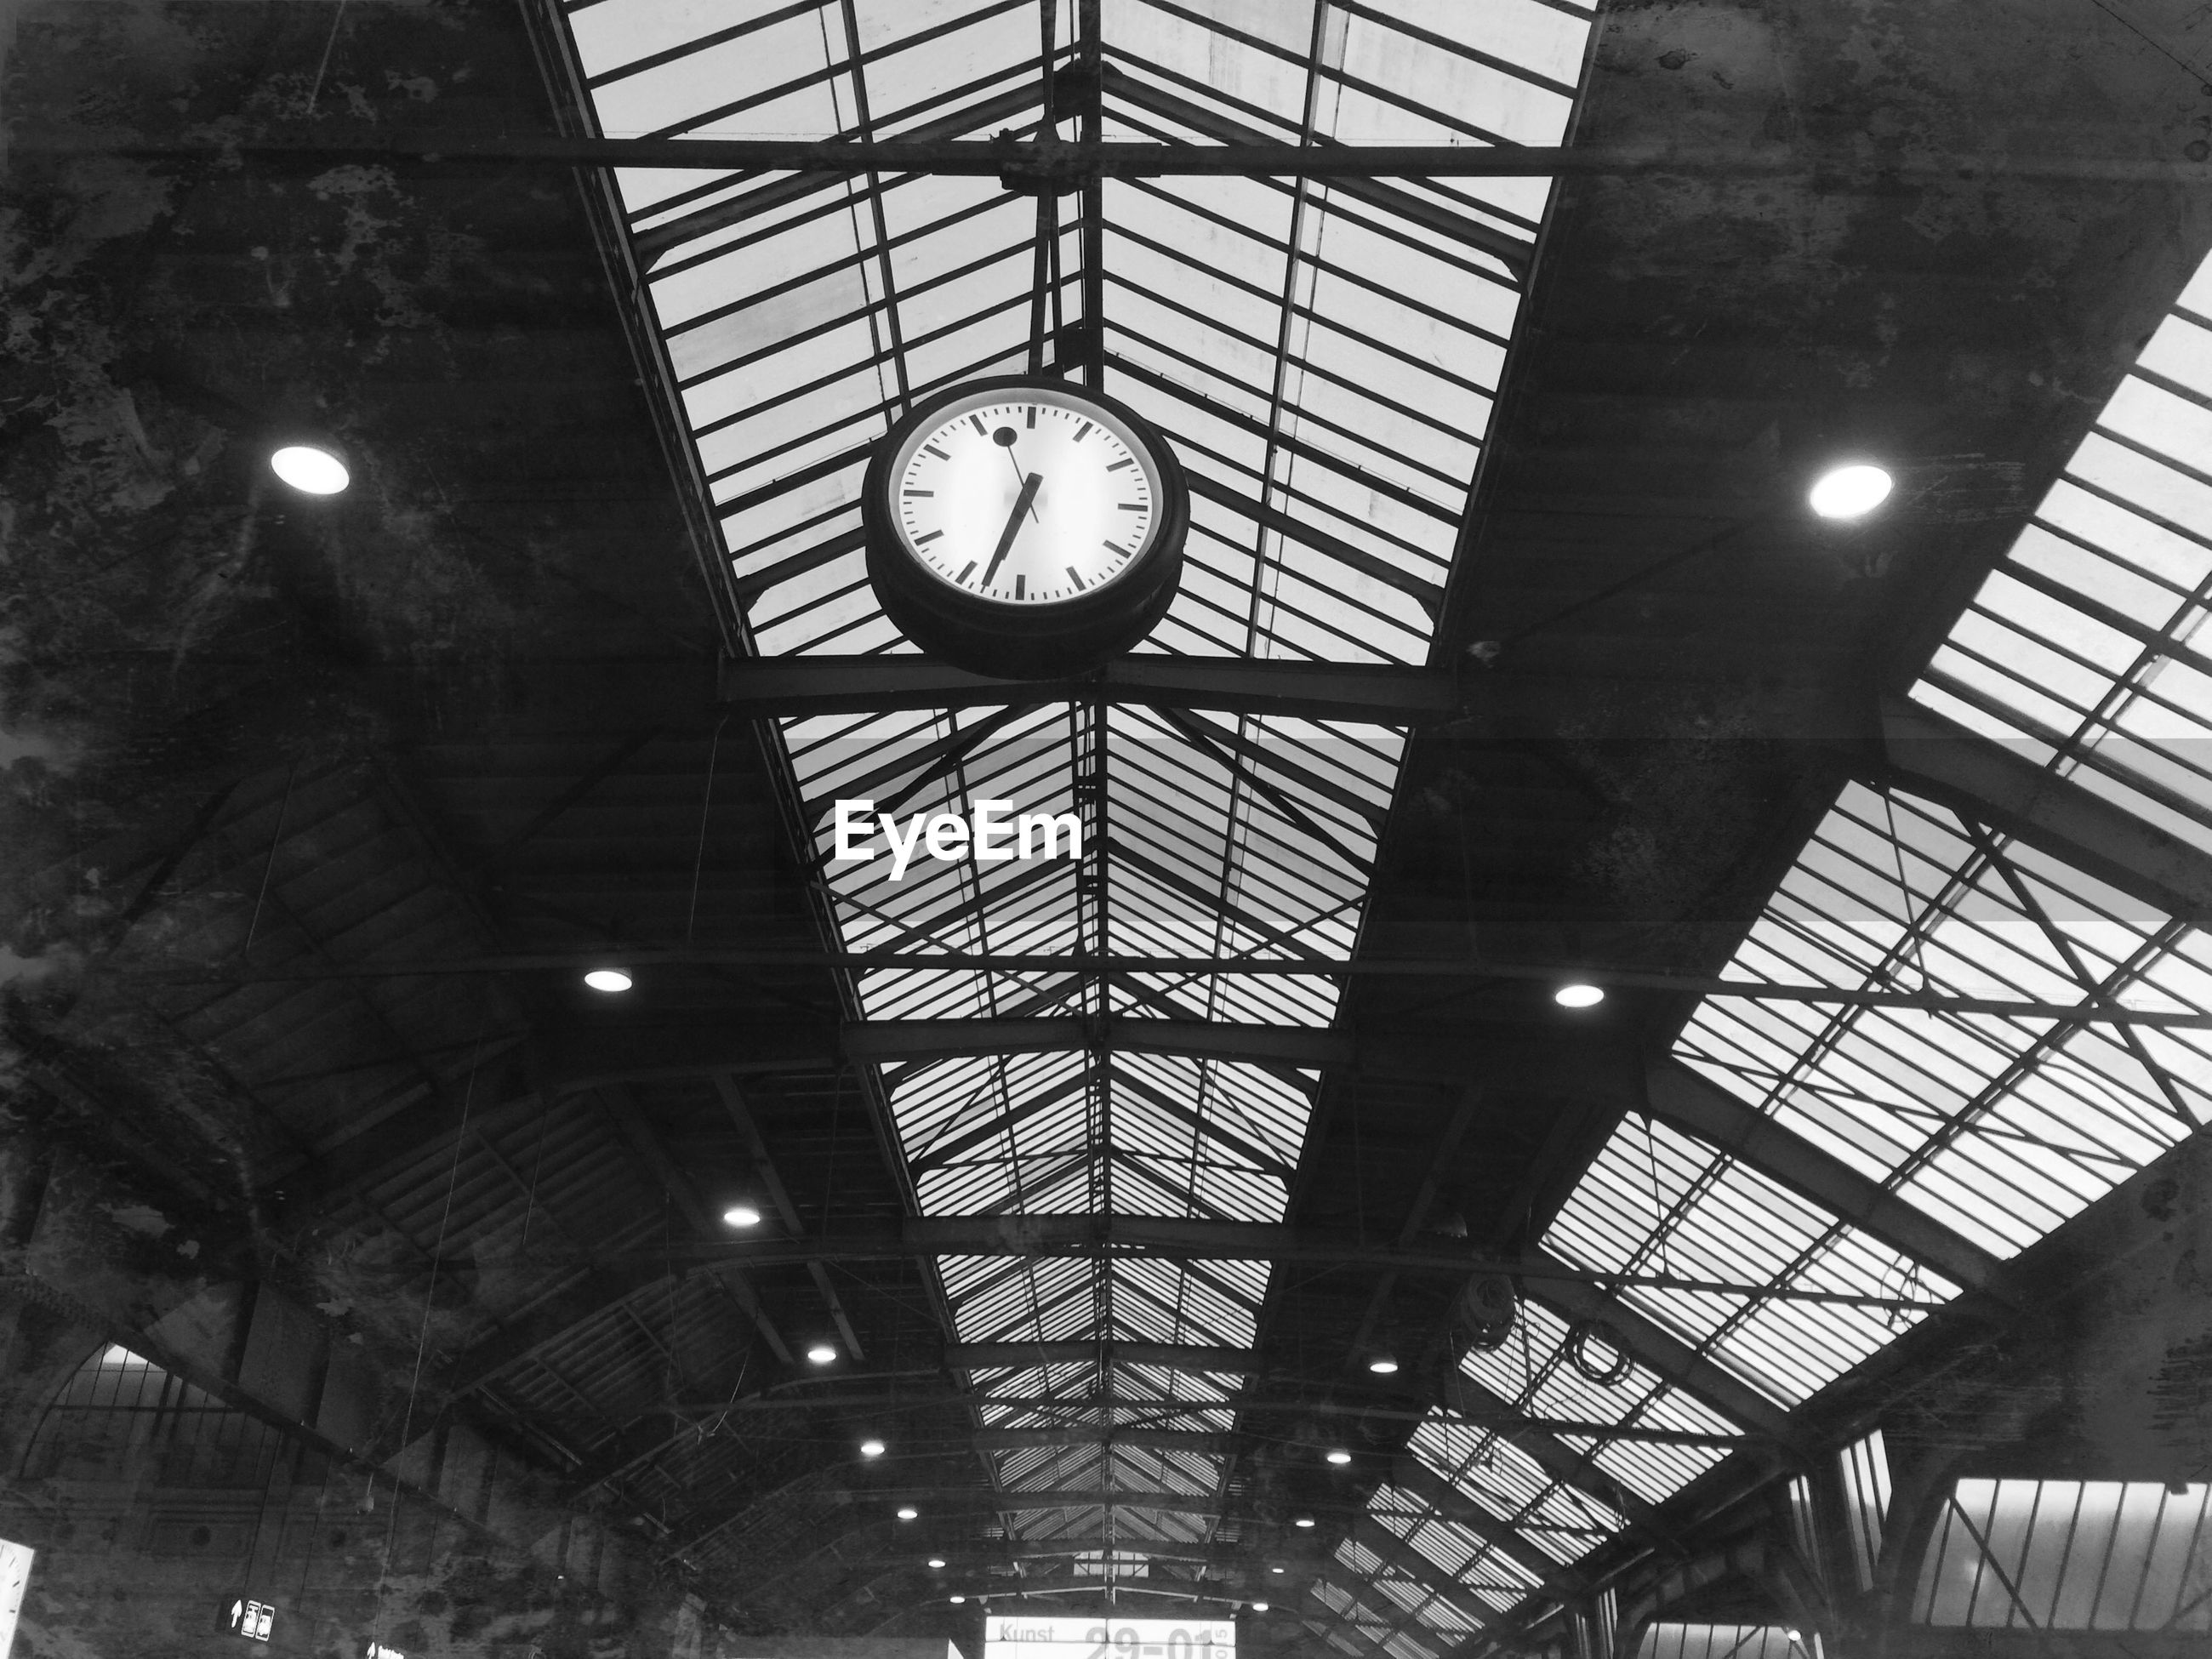 Low angle view of clock hanging from ceiling at railroad station